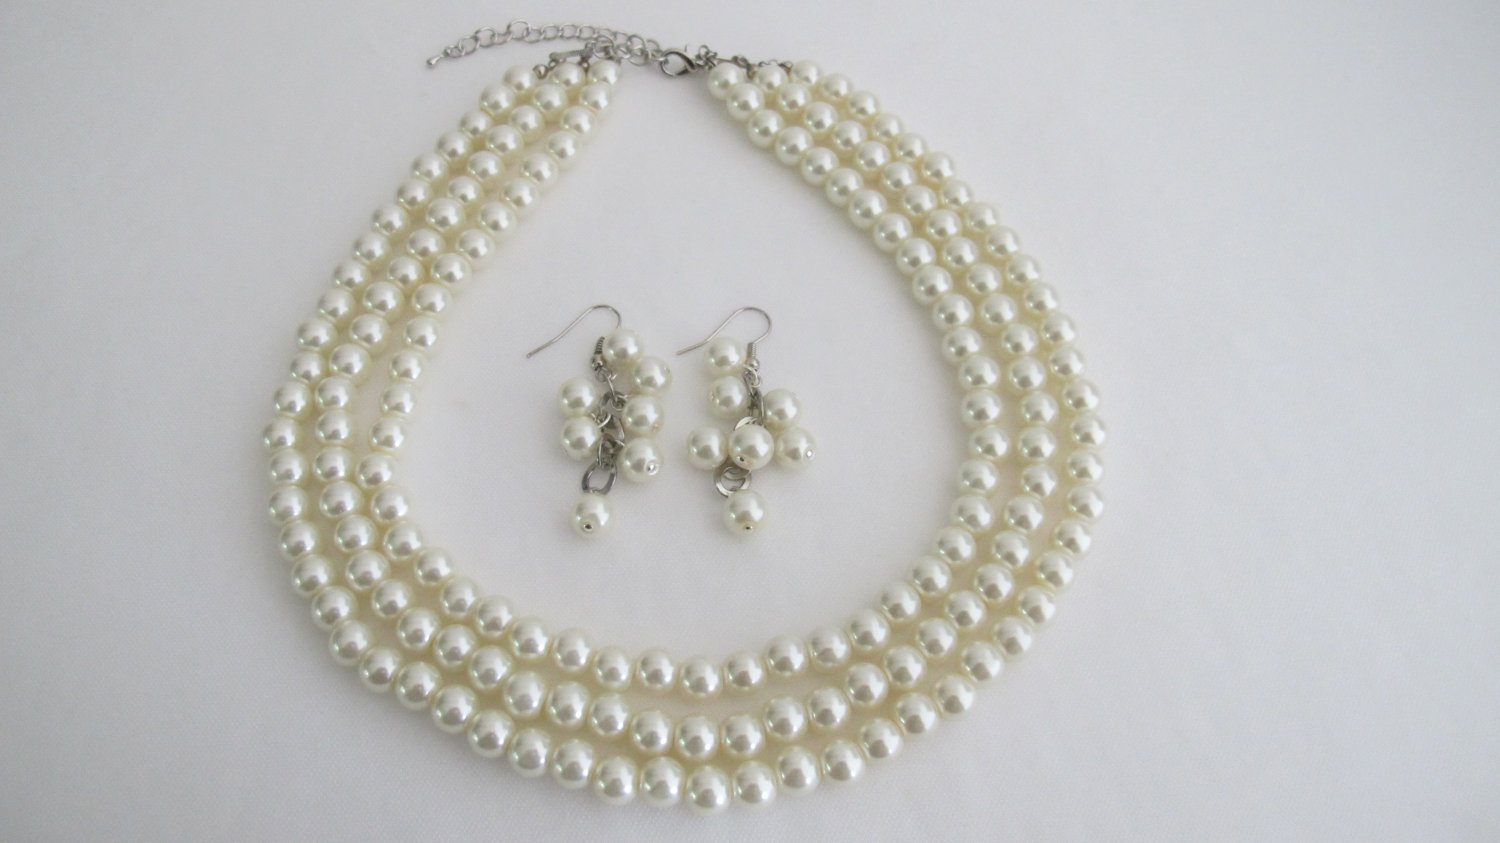 NS1306 Exclusive Wedding Jewelry Ivory Pearls Three Stranded Necklace Grape Earrings